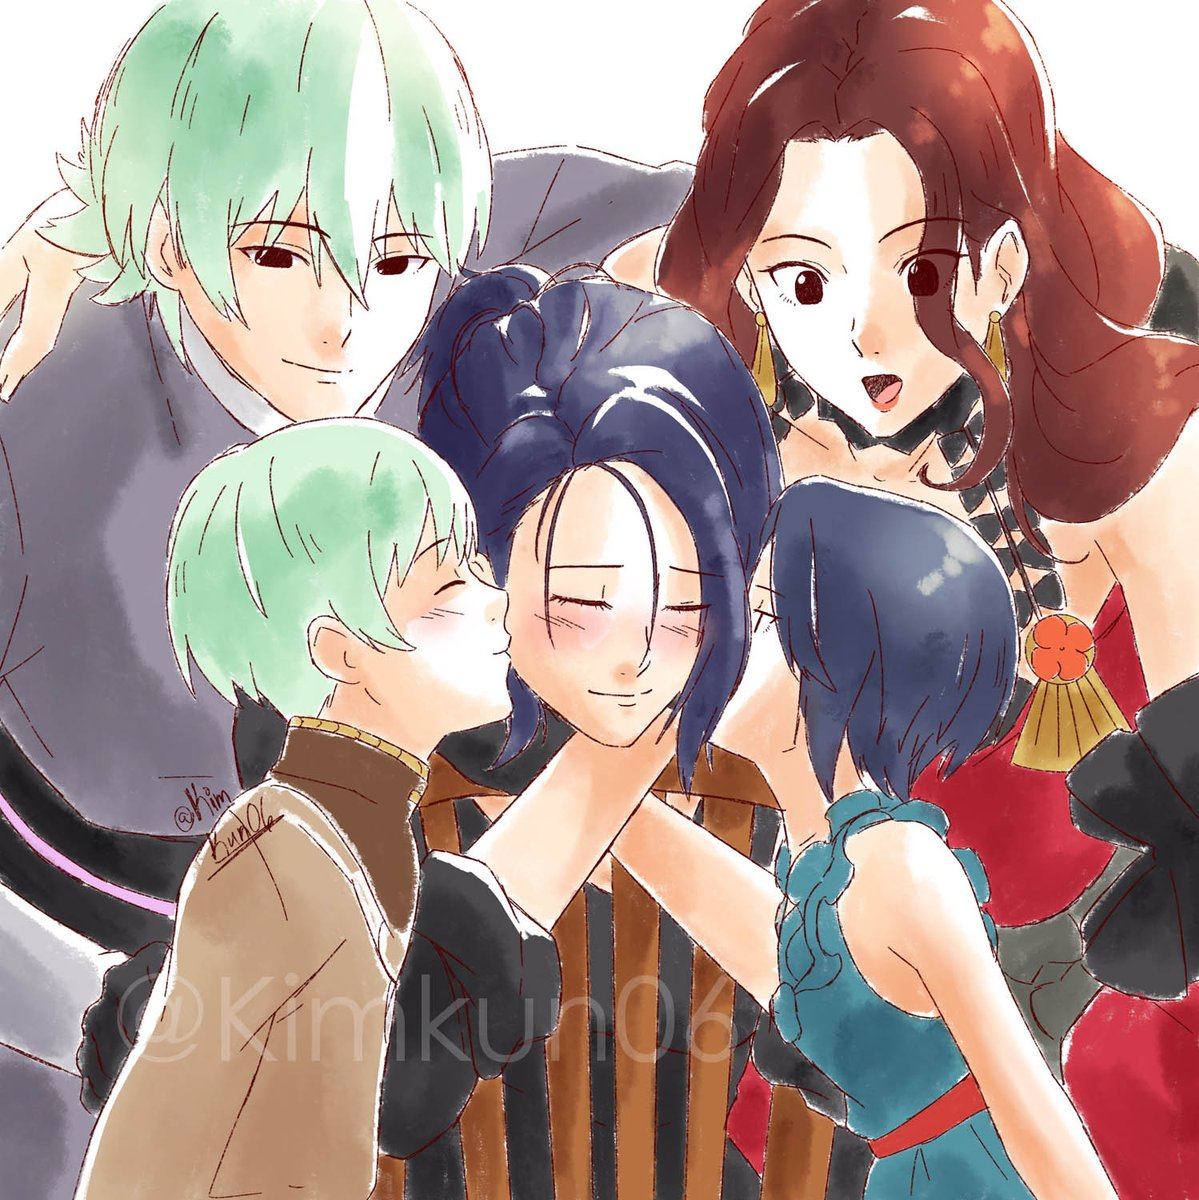 The Nevrands [Yes he took her last name] + Aunty Dorothea  #FireEmblemThreeHouses #FireEmblem3Houses #FE3H<br>http://pic.twitter.com/tBxUd3uiGq